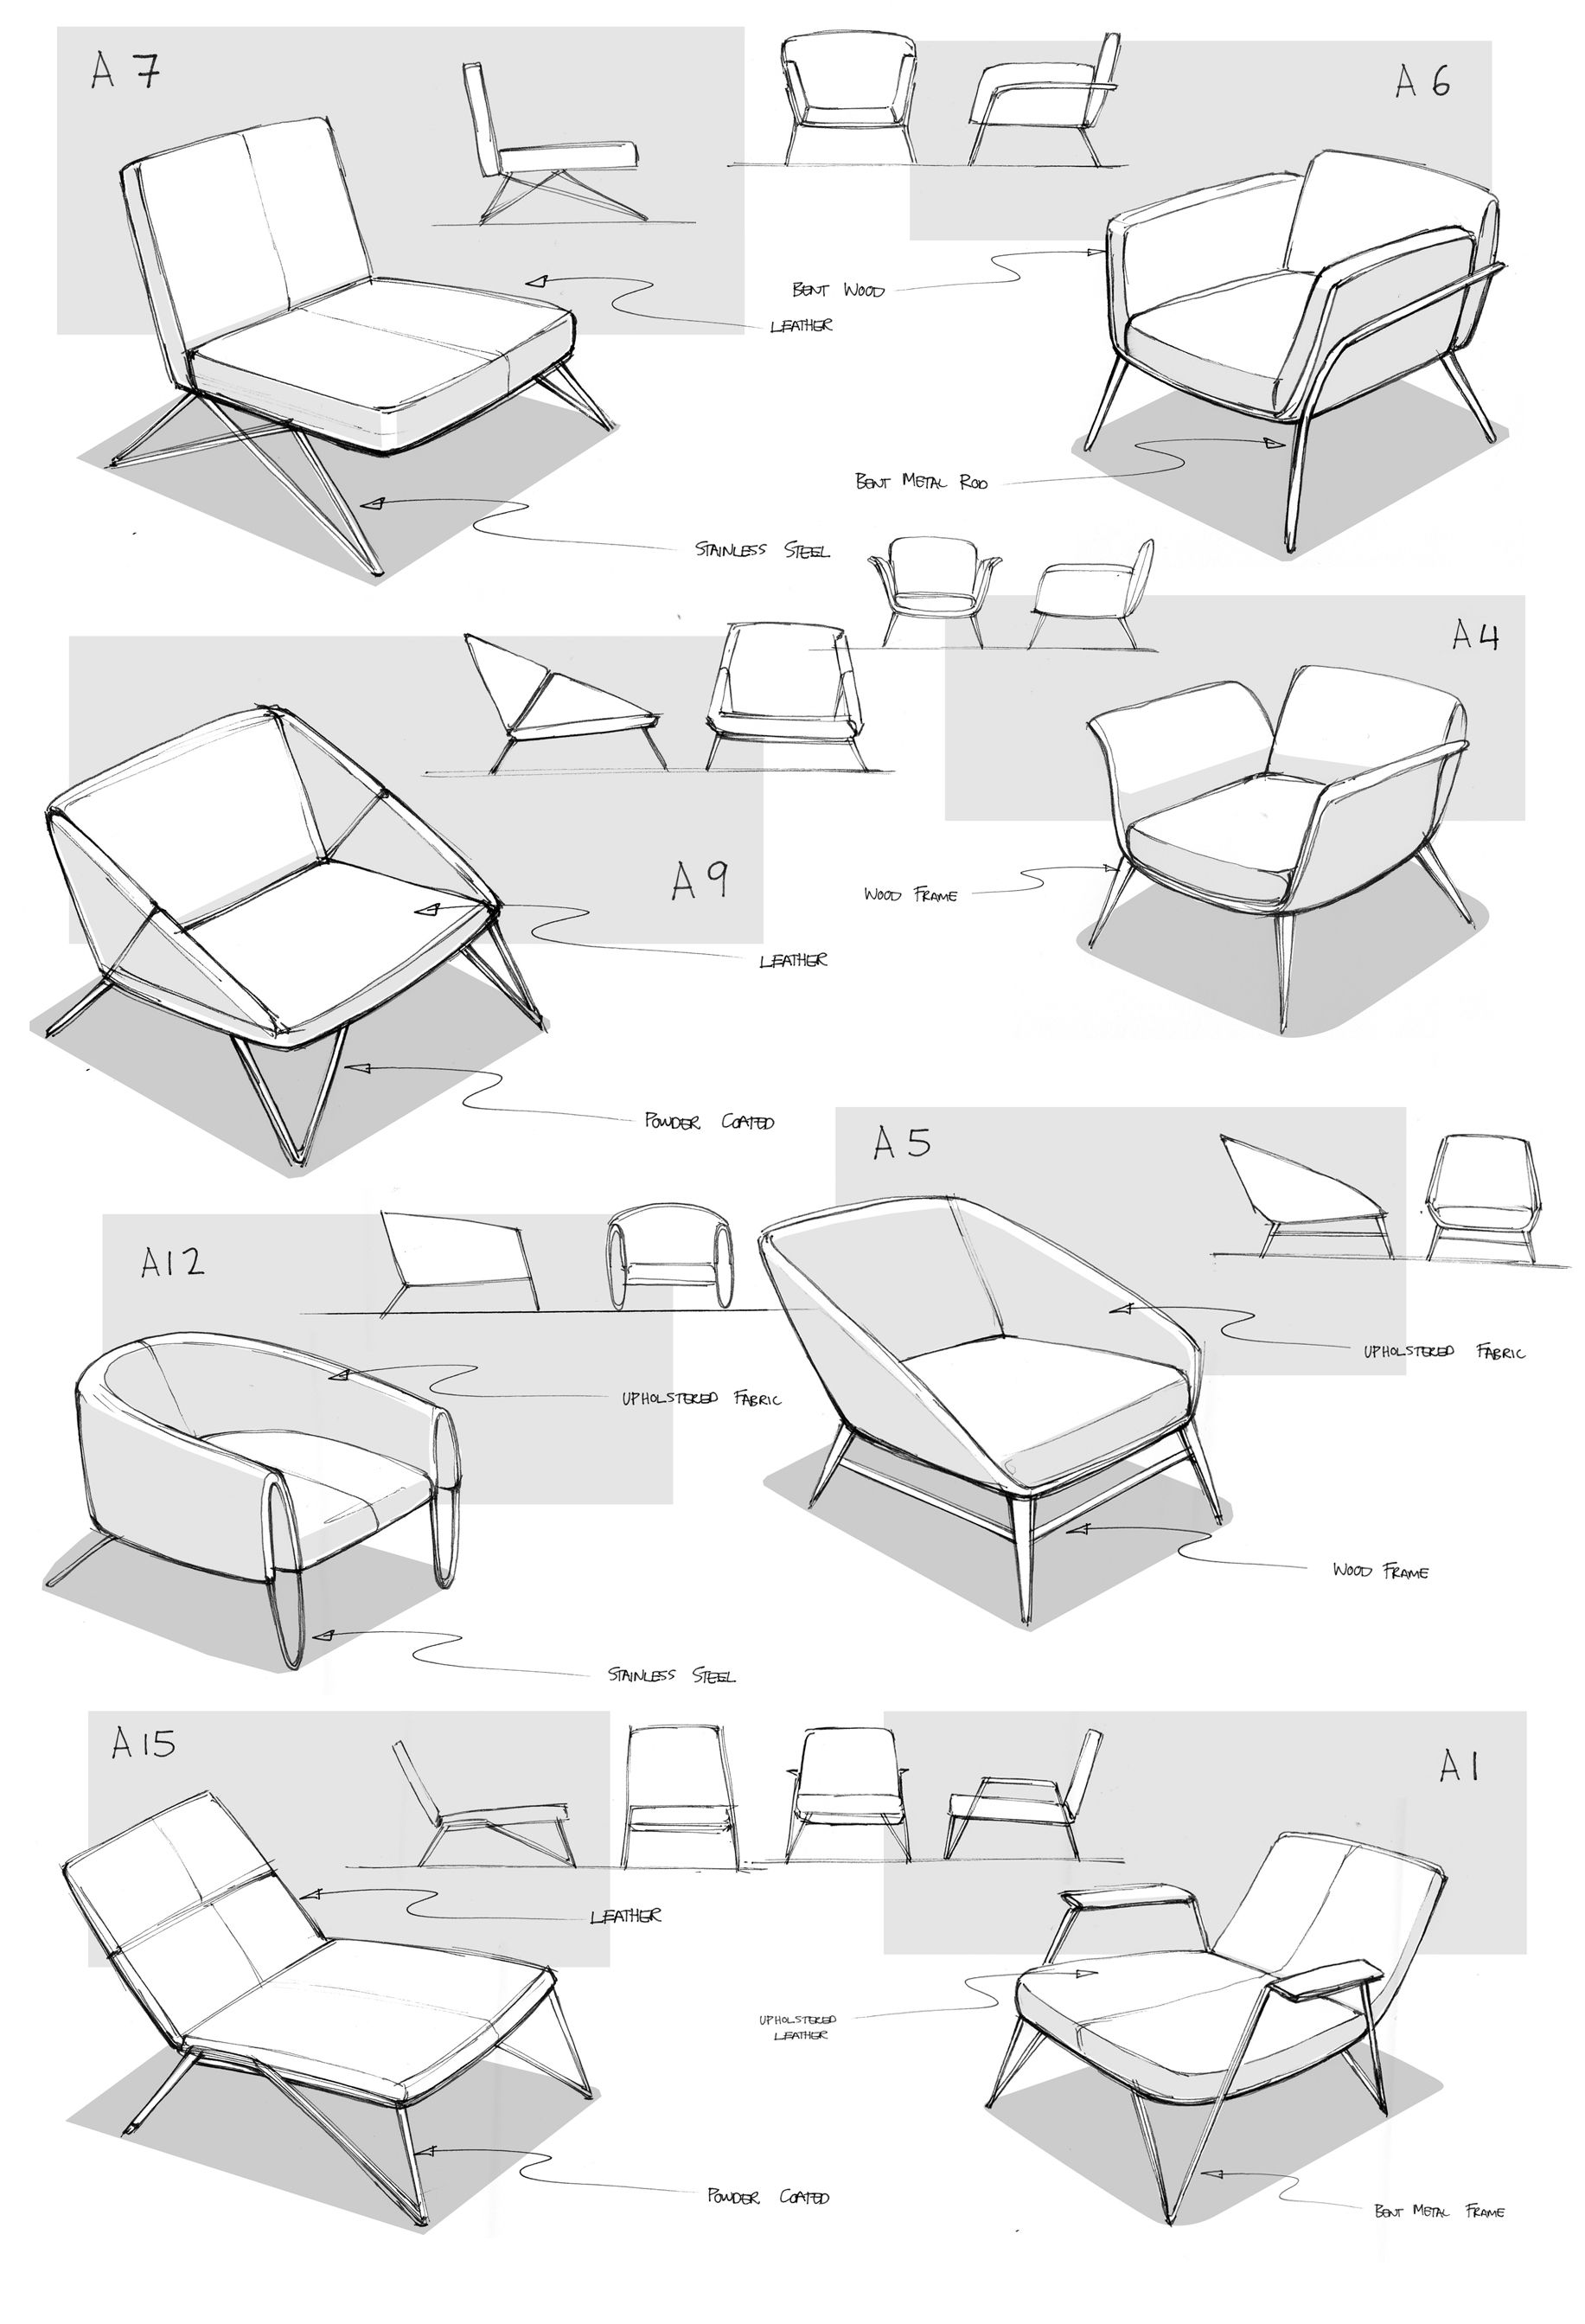 Lounge Chair By Matthew Choto At Coroflot Com Furniture Design Sketches Drawing Furniture Interior Design Sketches